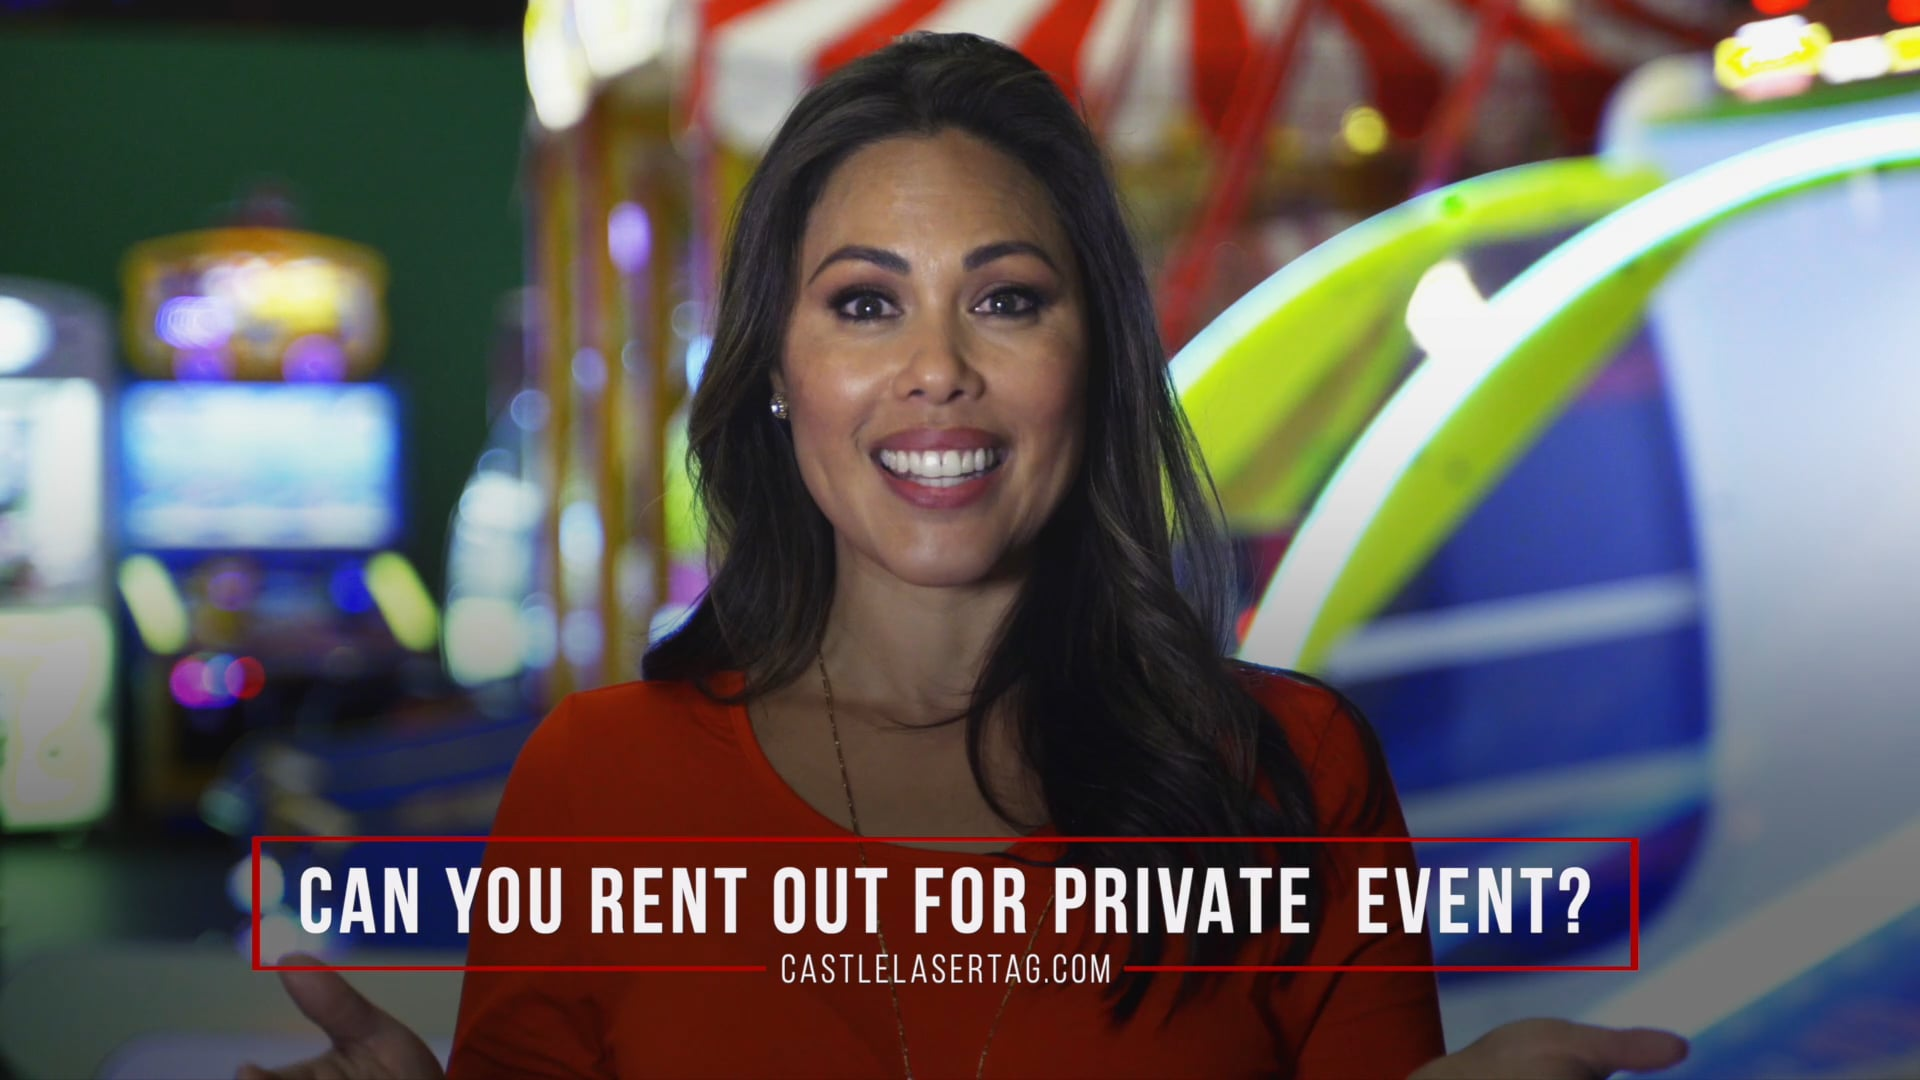 Can you rent out Castle Laser Tag for a private event?